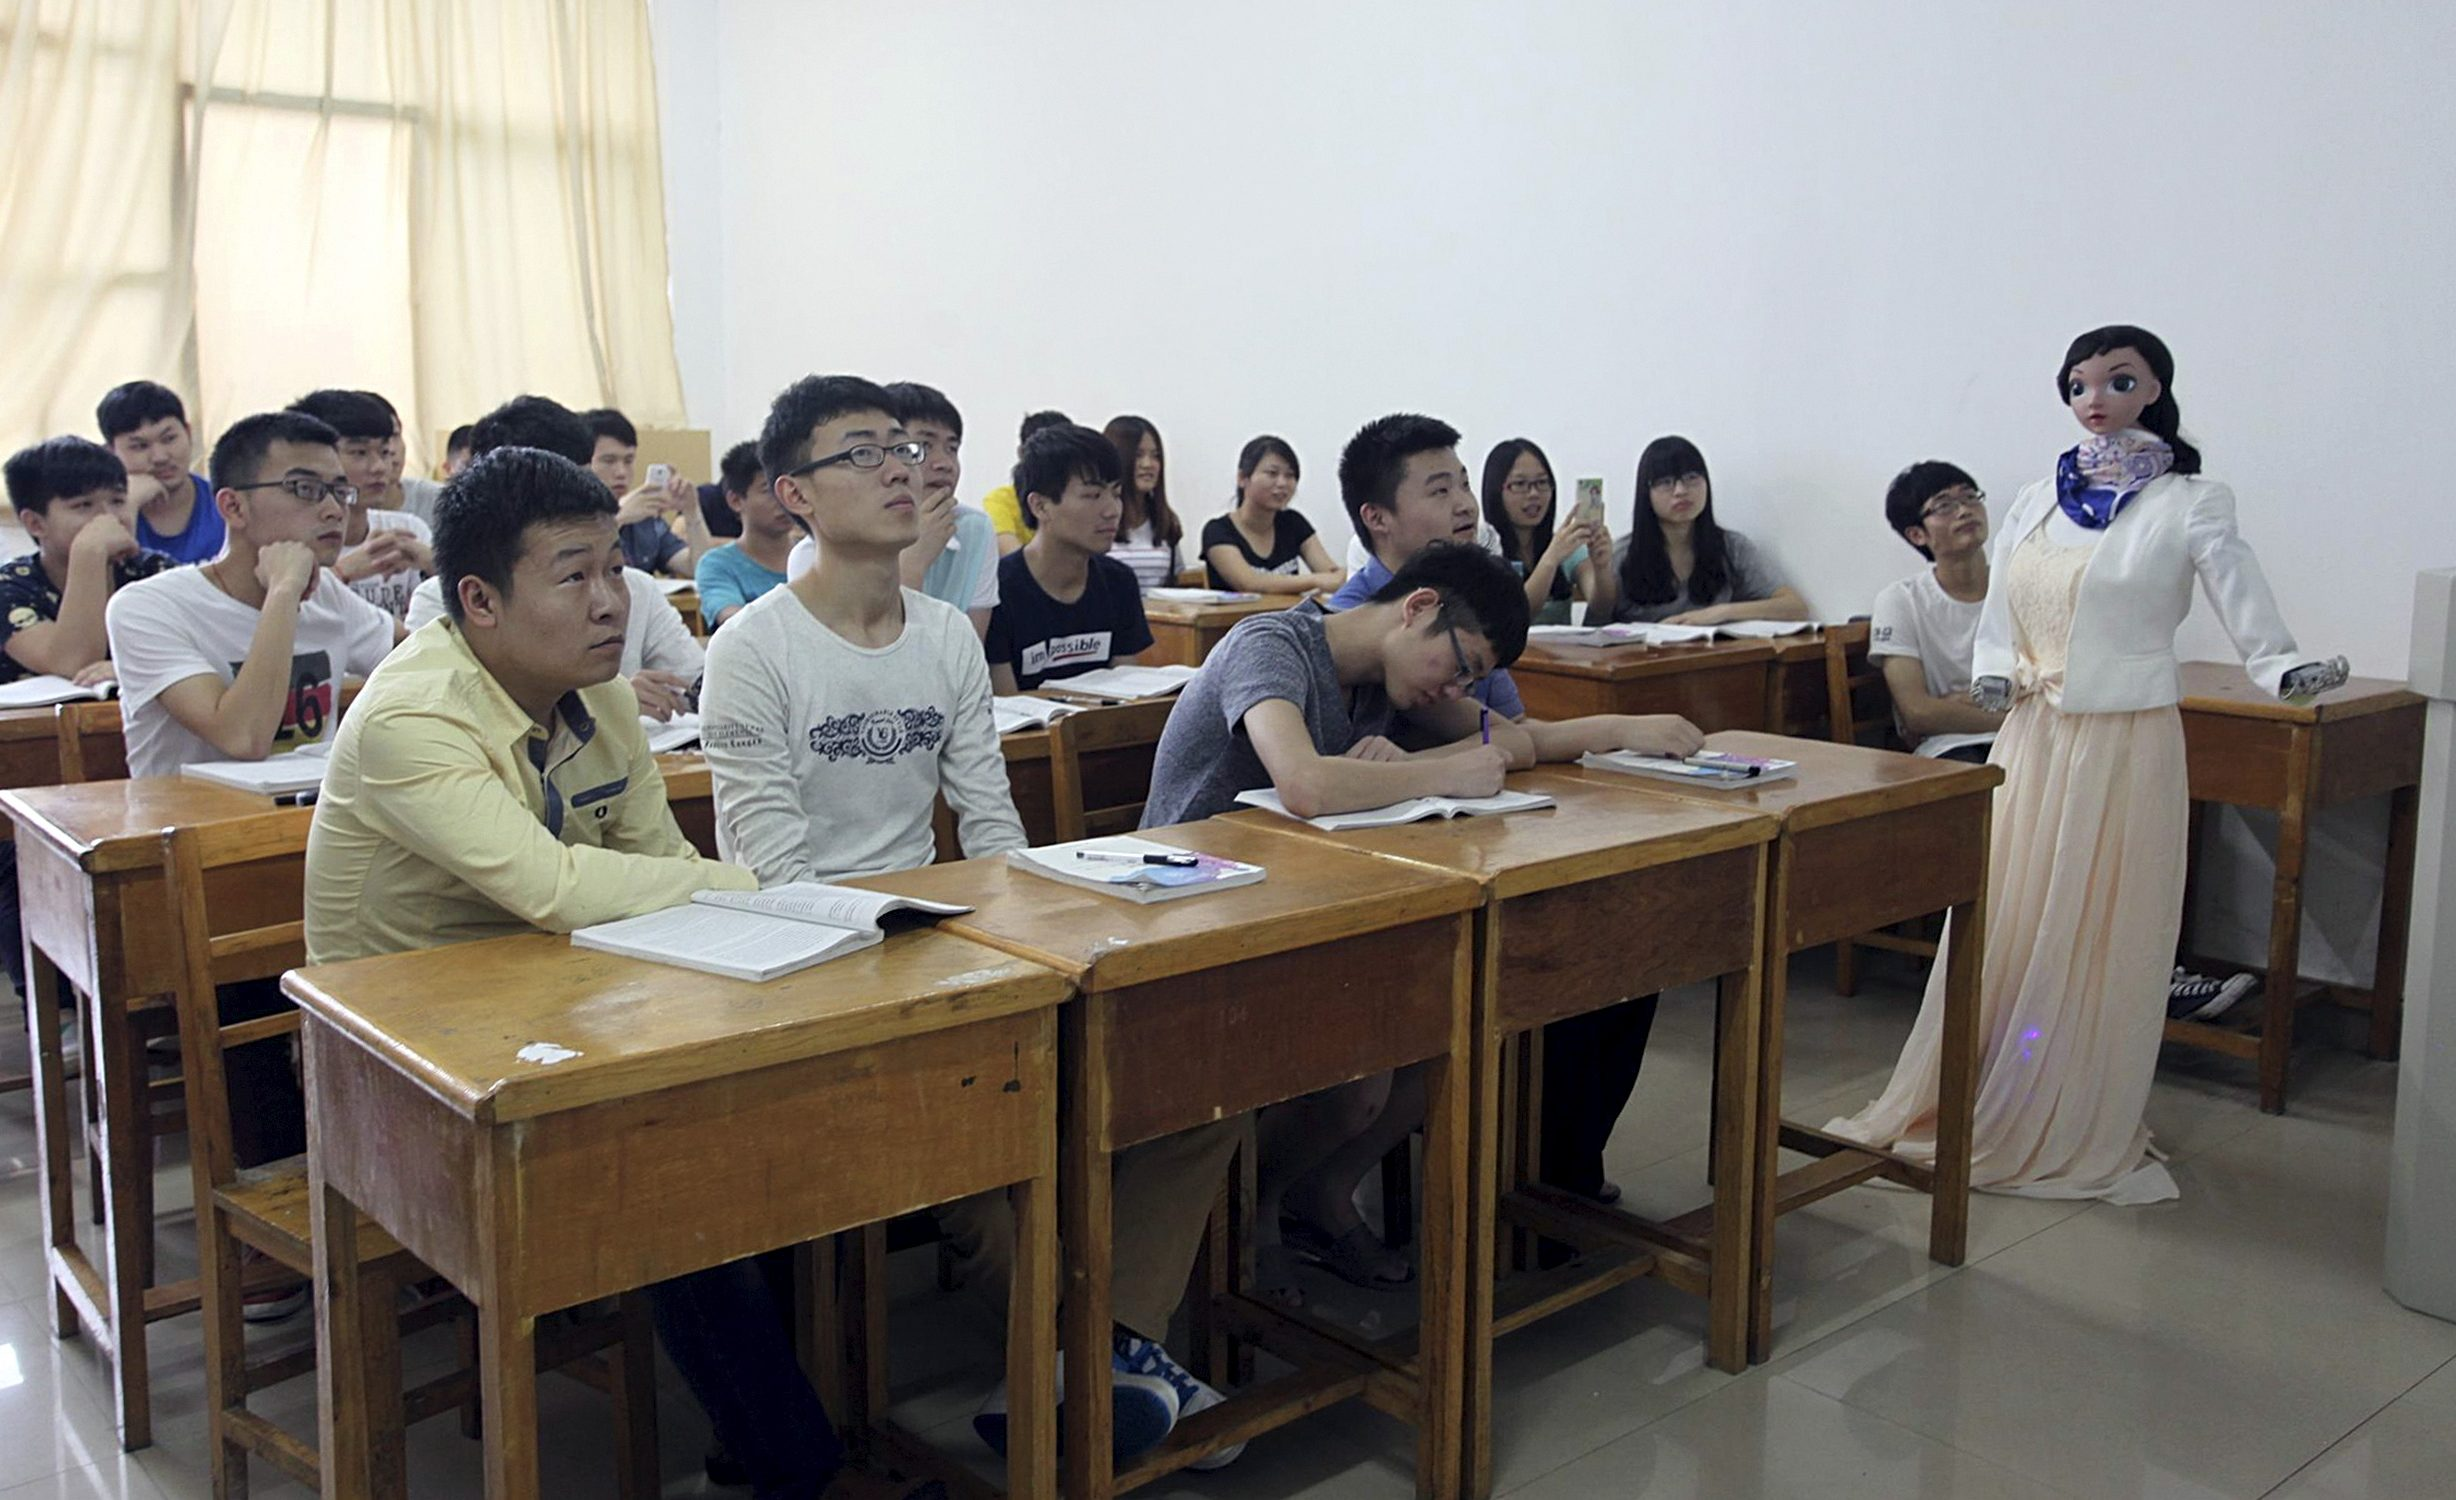 """A robot teacher named """"Xiaomei"""" (R) gestures during a demonstration at a class of Jiujiang University, in Jiujiang, Jiangxi province, China, June 3, 2015. The robot, designed and made by a team led by teacher Zhang Guangshun, is able to narrate the teaching materials and response to several voice orders like """"repeat"""" or """"continue"""". It took the team a month time to build the robot, local media reported. Picture taken June 3, 2015. REUTERS/China Daily"""